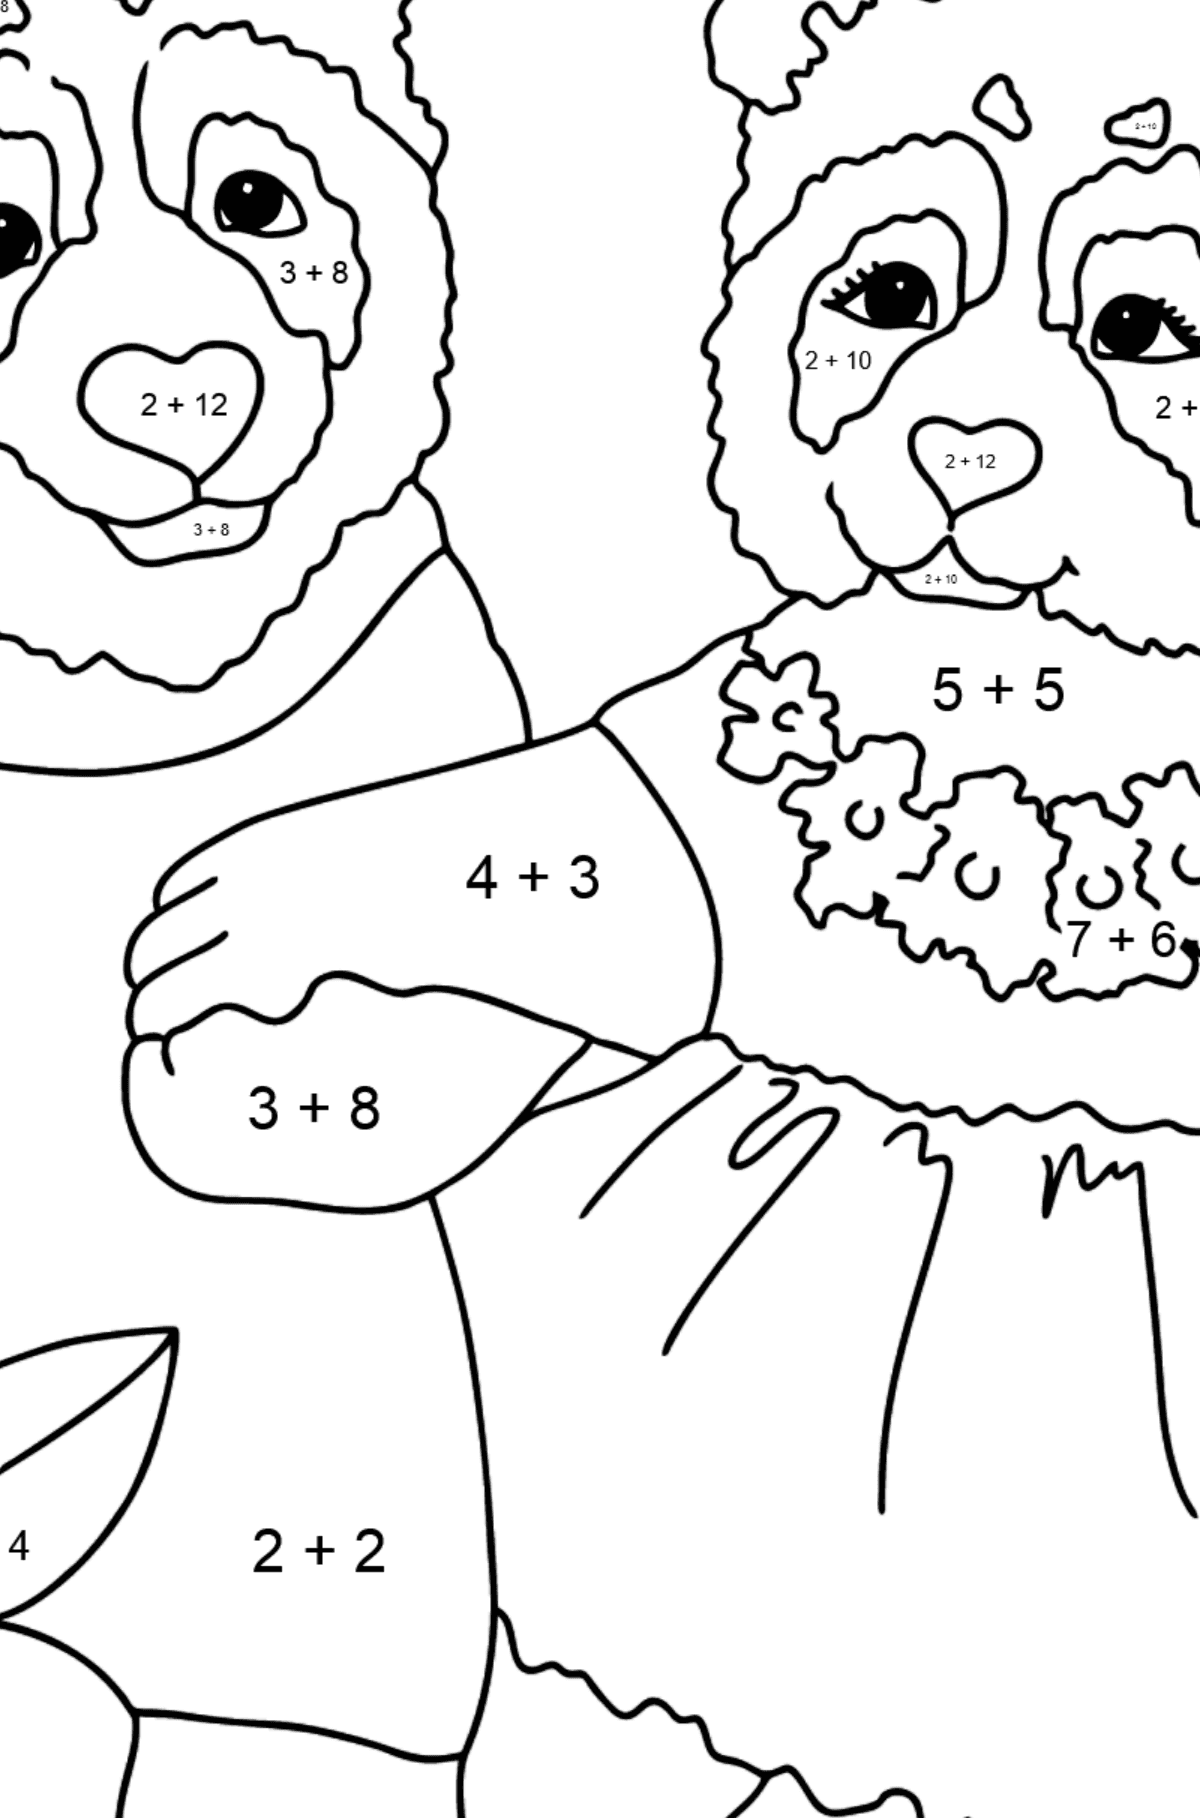 Coloring Page - Pandas are Taking a Walk - Math Coloring - Addition for Kids